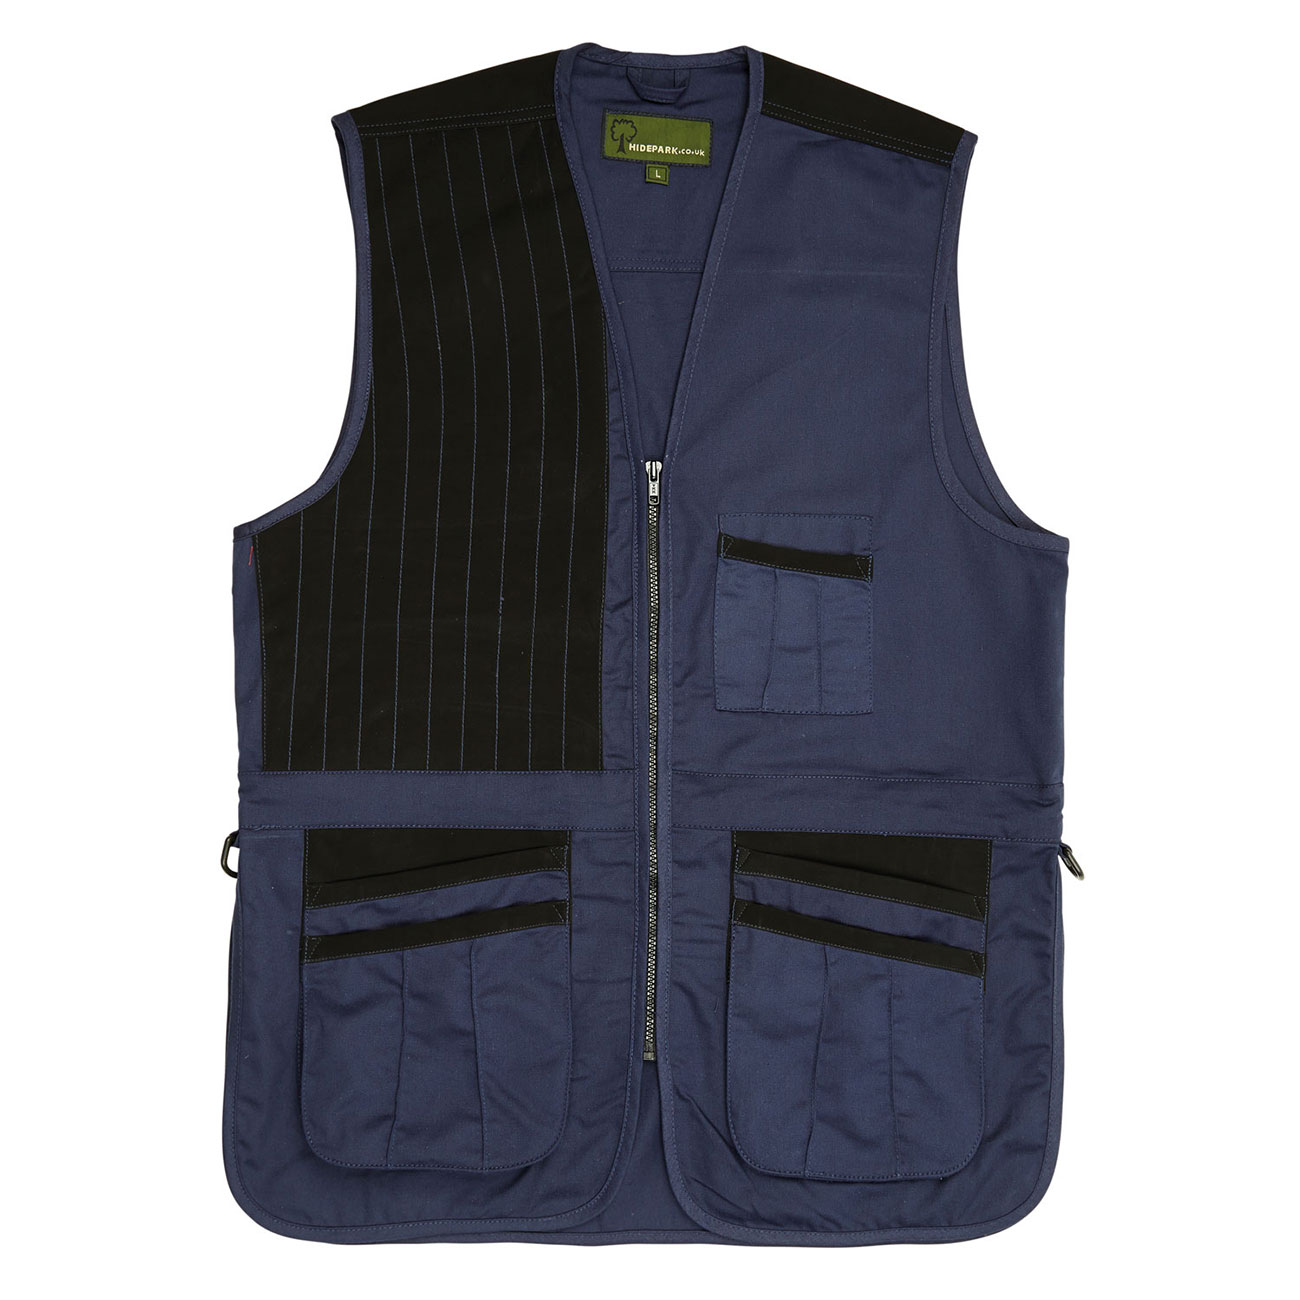 Cotton Canvas Skeet Vest navy SK